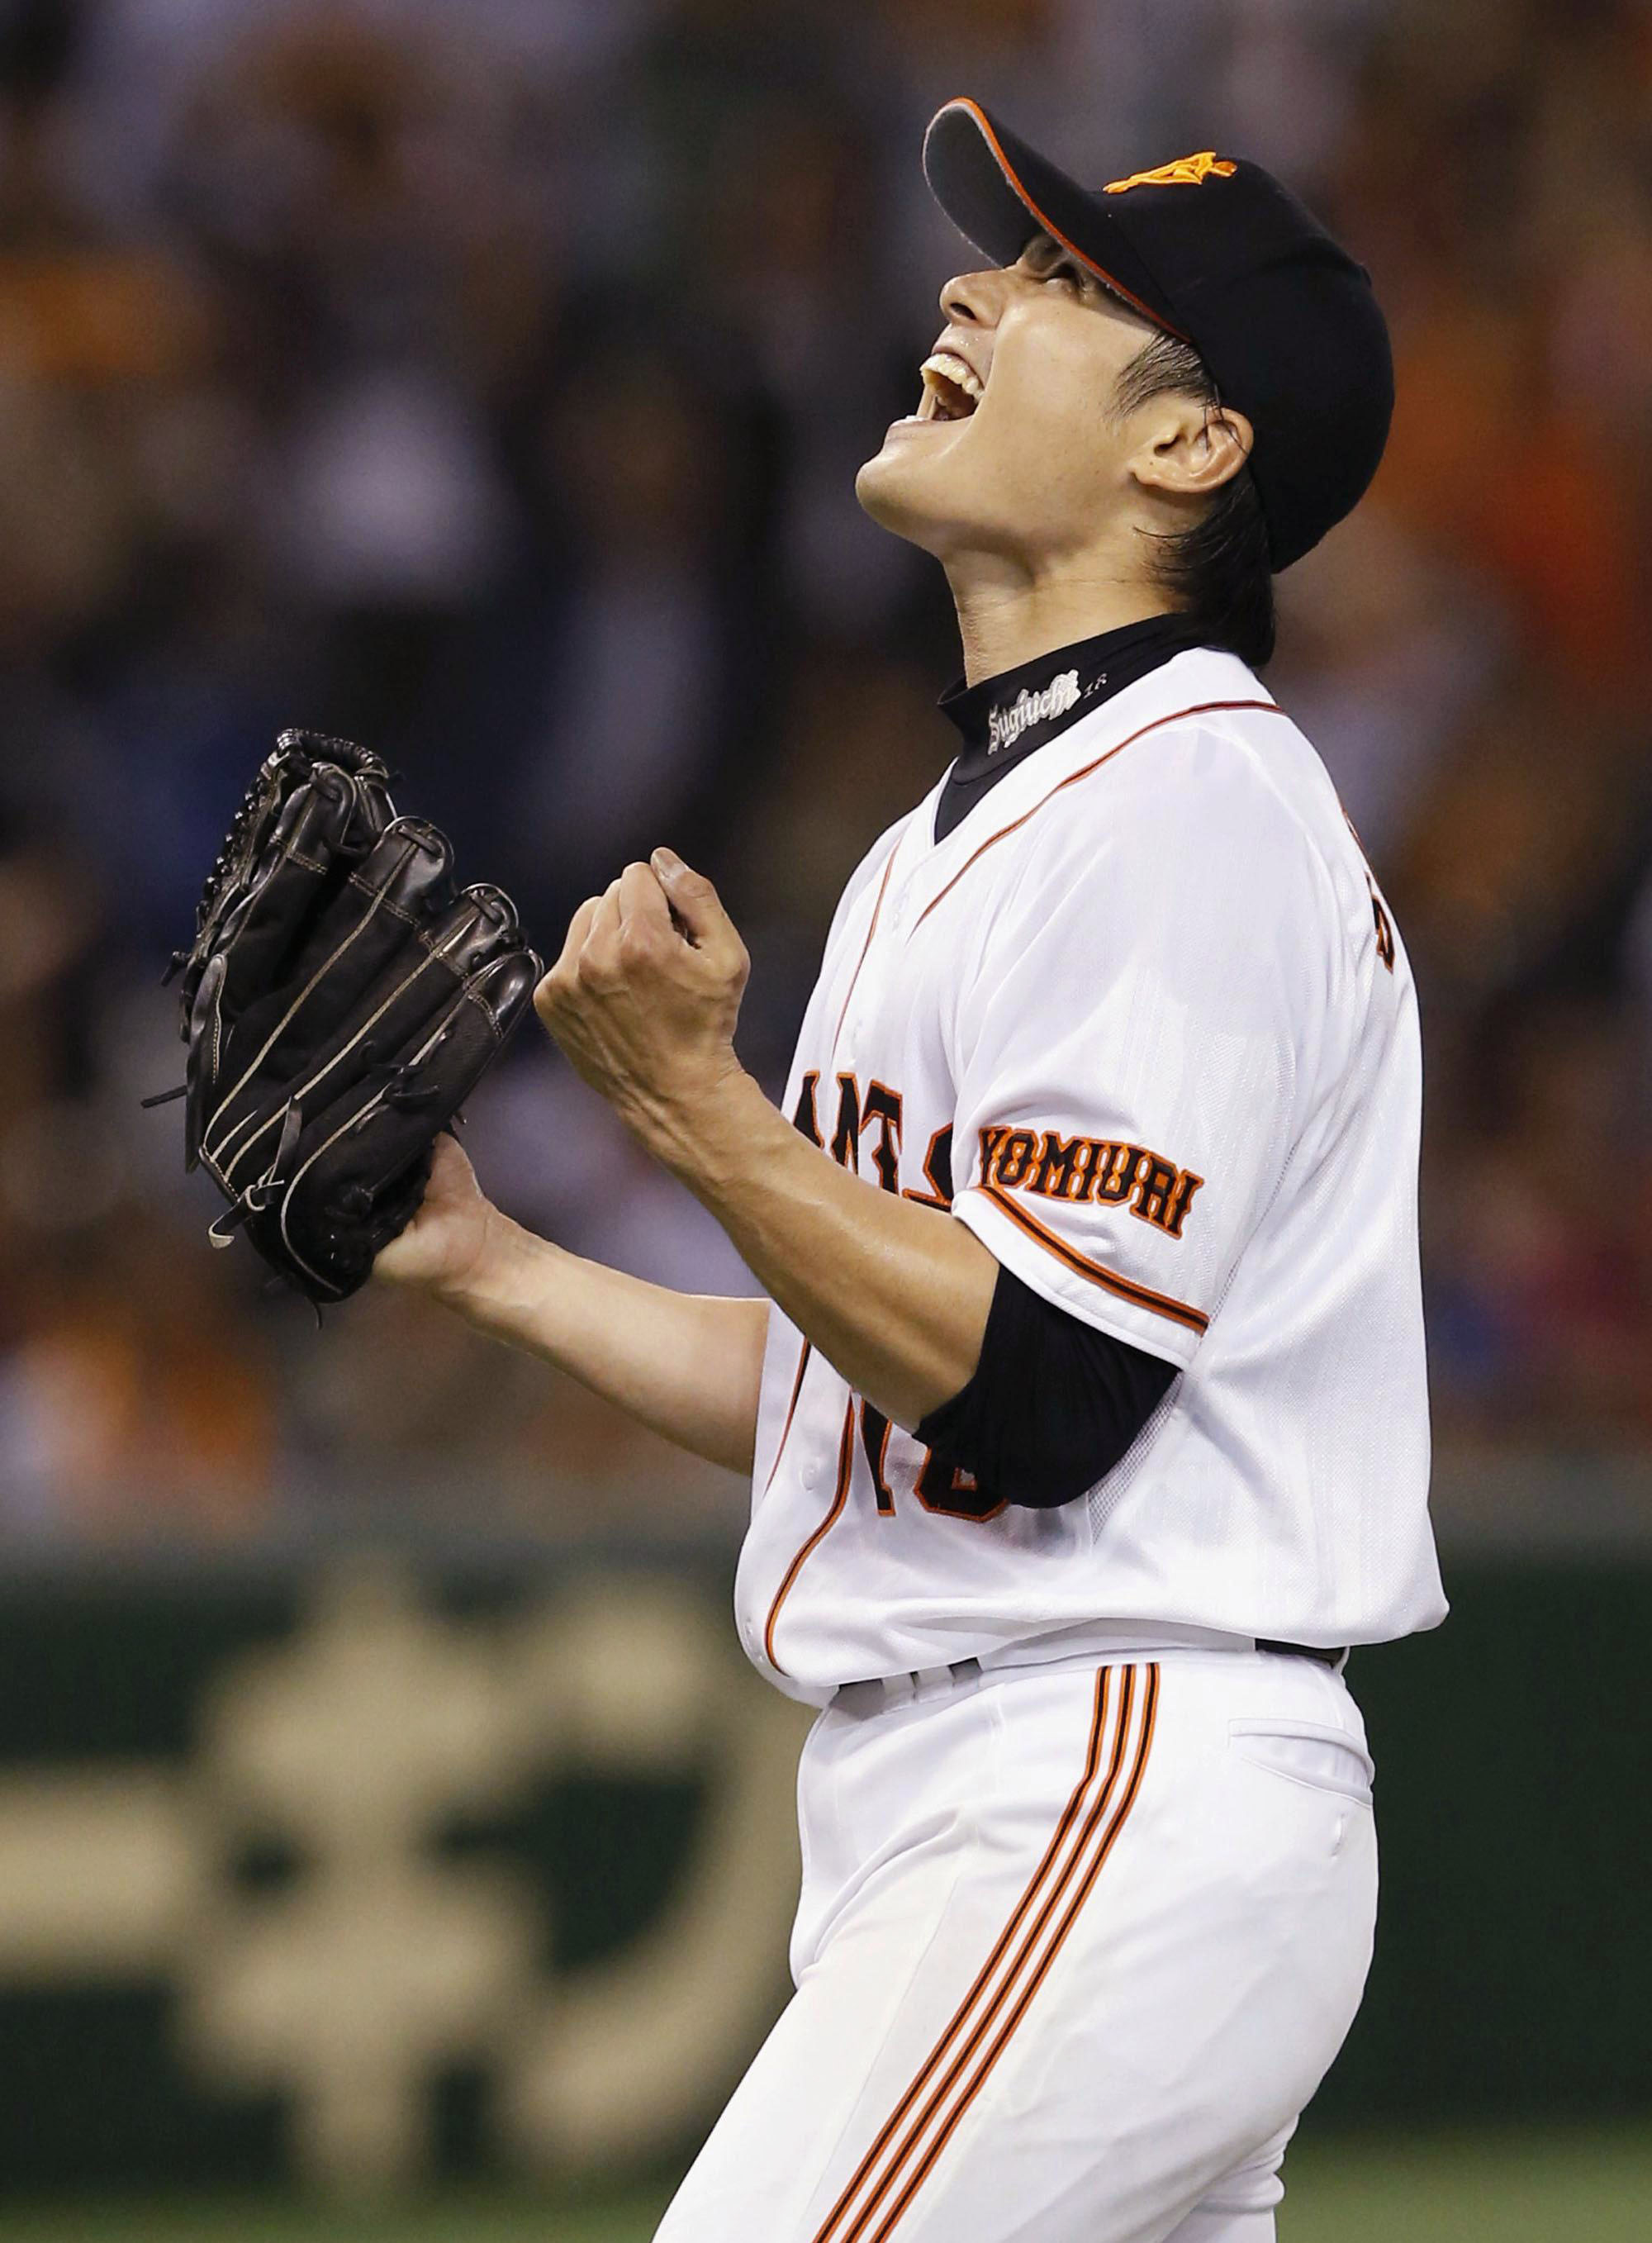 Month to remember: Toshiya Sugiuchi was 4-0 in five starts last month. | KYODO